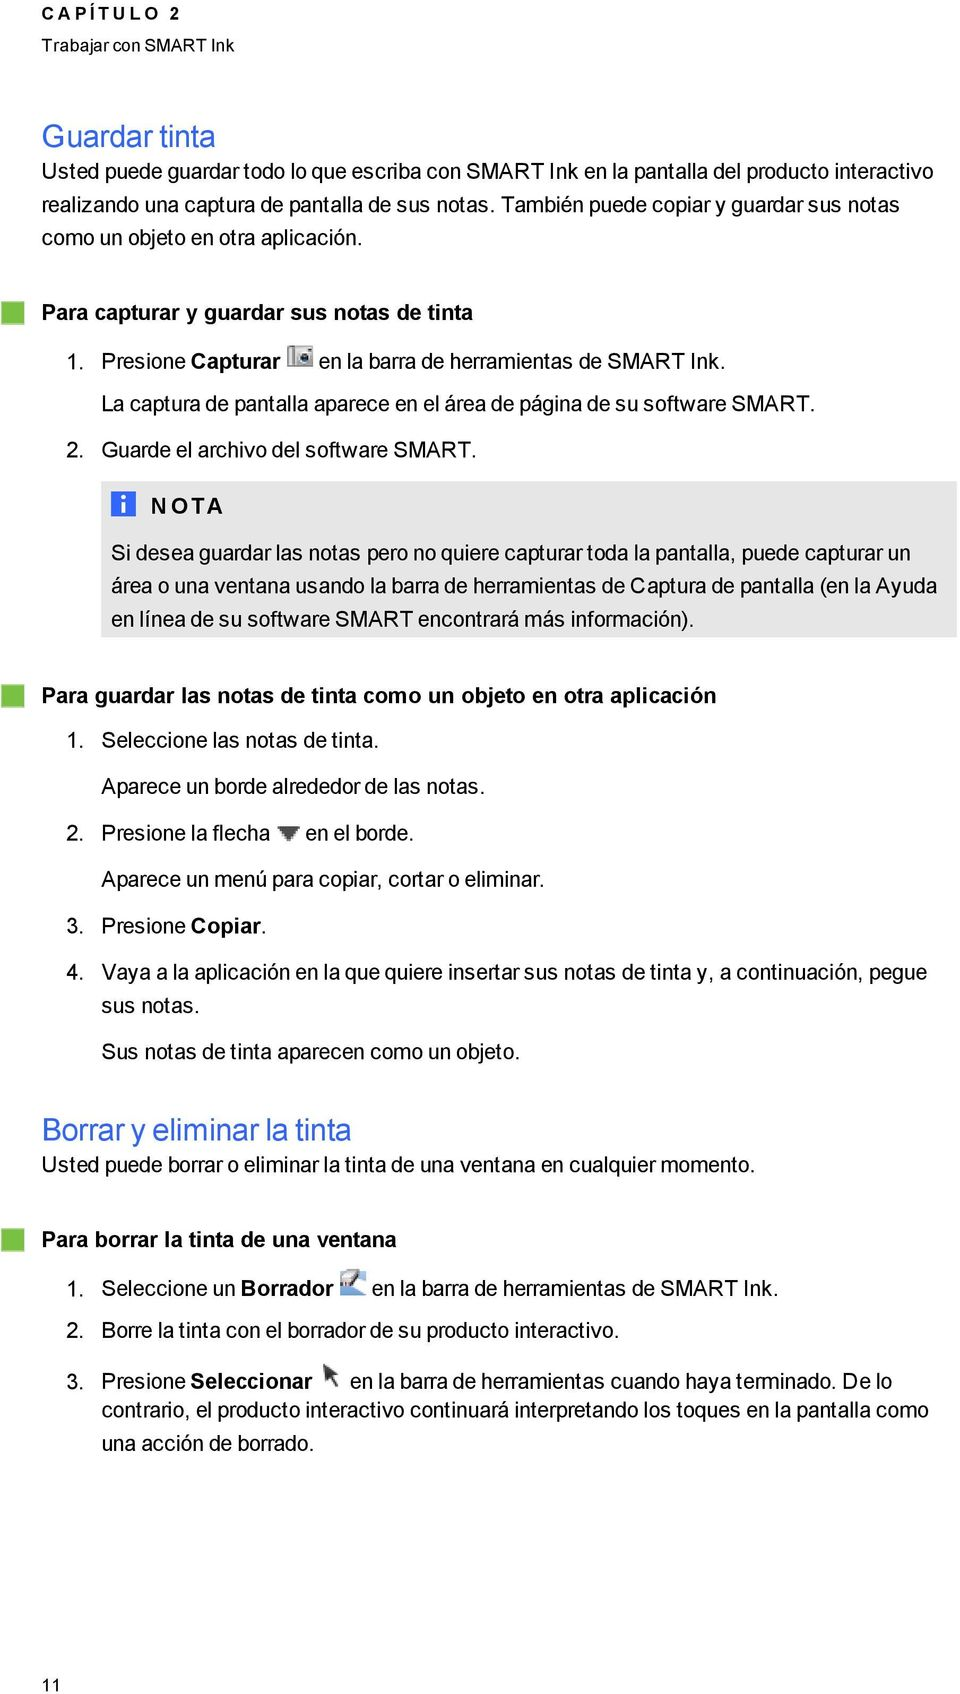 La captura de pantalla aparece en el área de páina de su software SMART. 2. Guarde el archivo del software SMART.